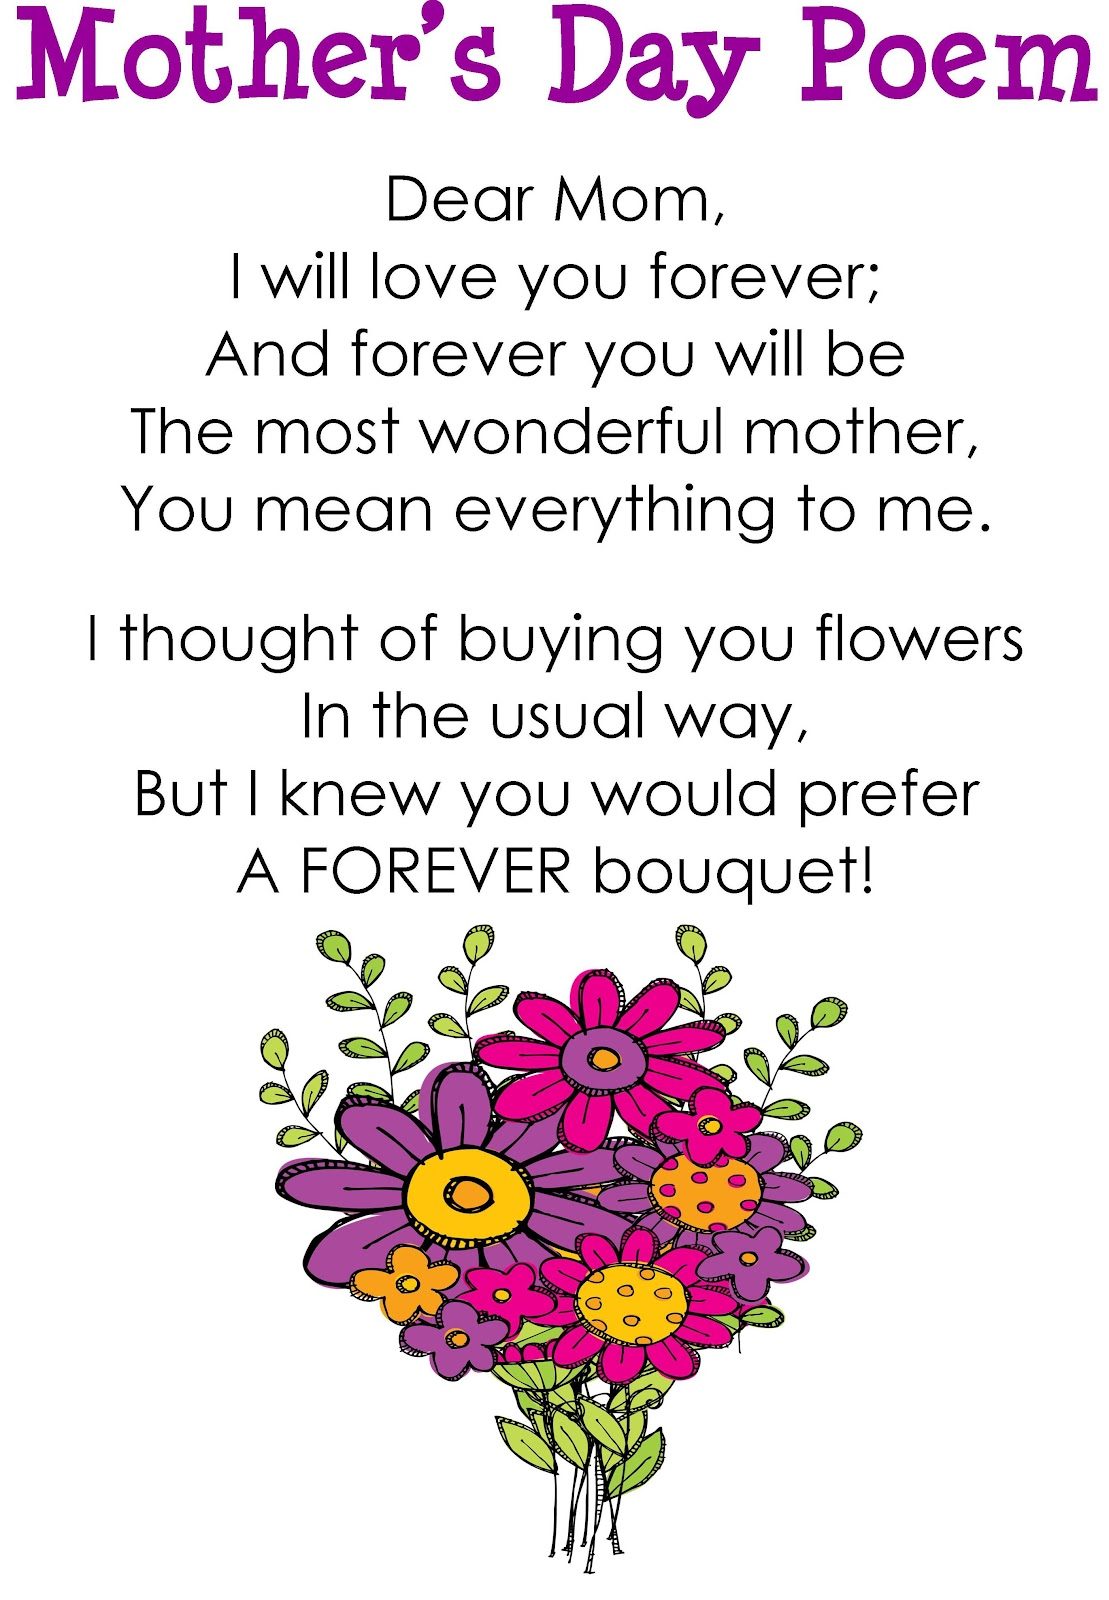 """ Mother's Day Poem, Dear Mom I Will Love You Forever And Forever You Will Be The Most Wonderful Mother, You Mean Everything To Me…."